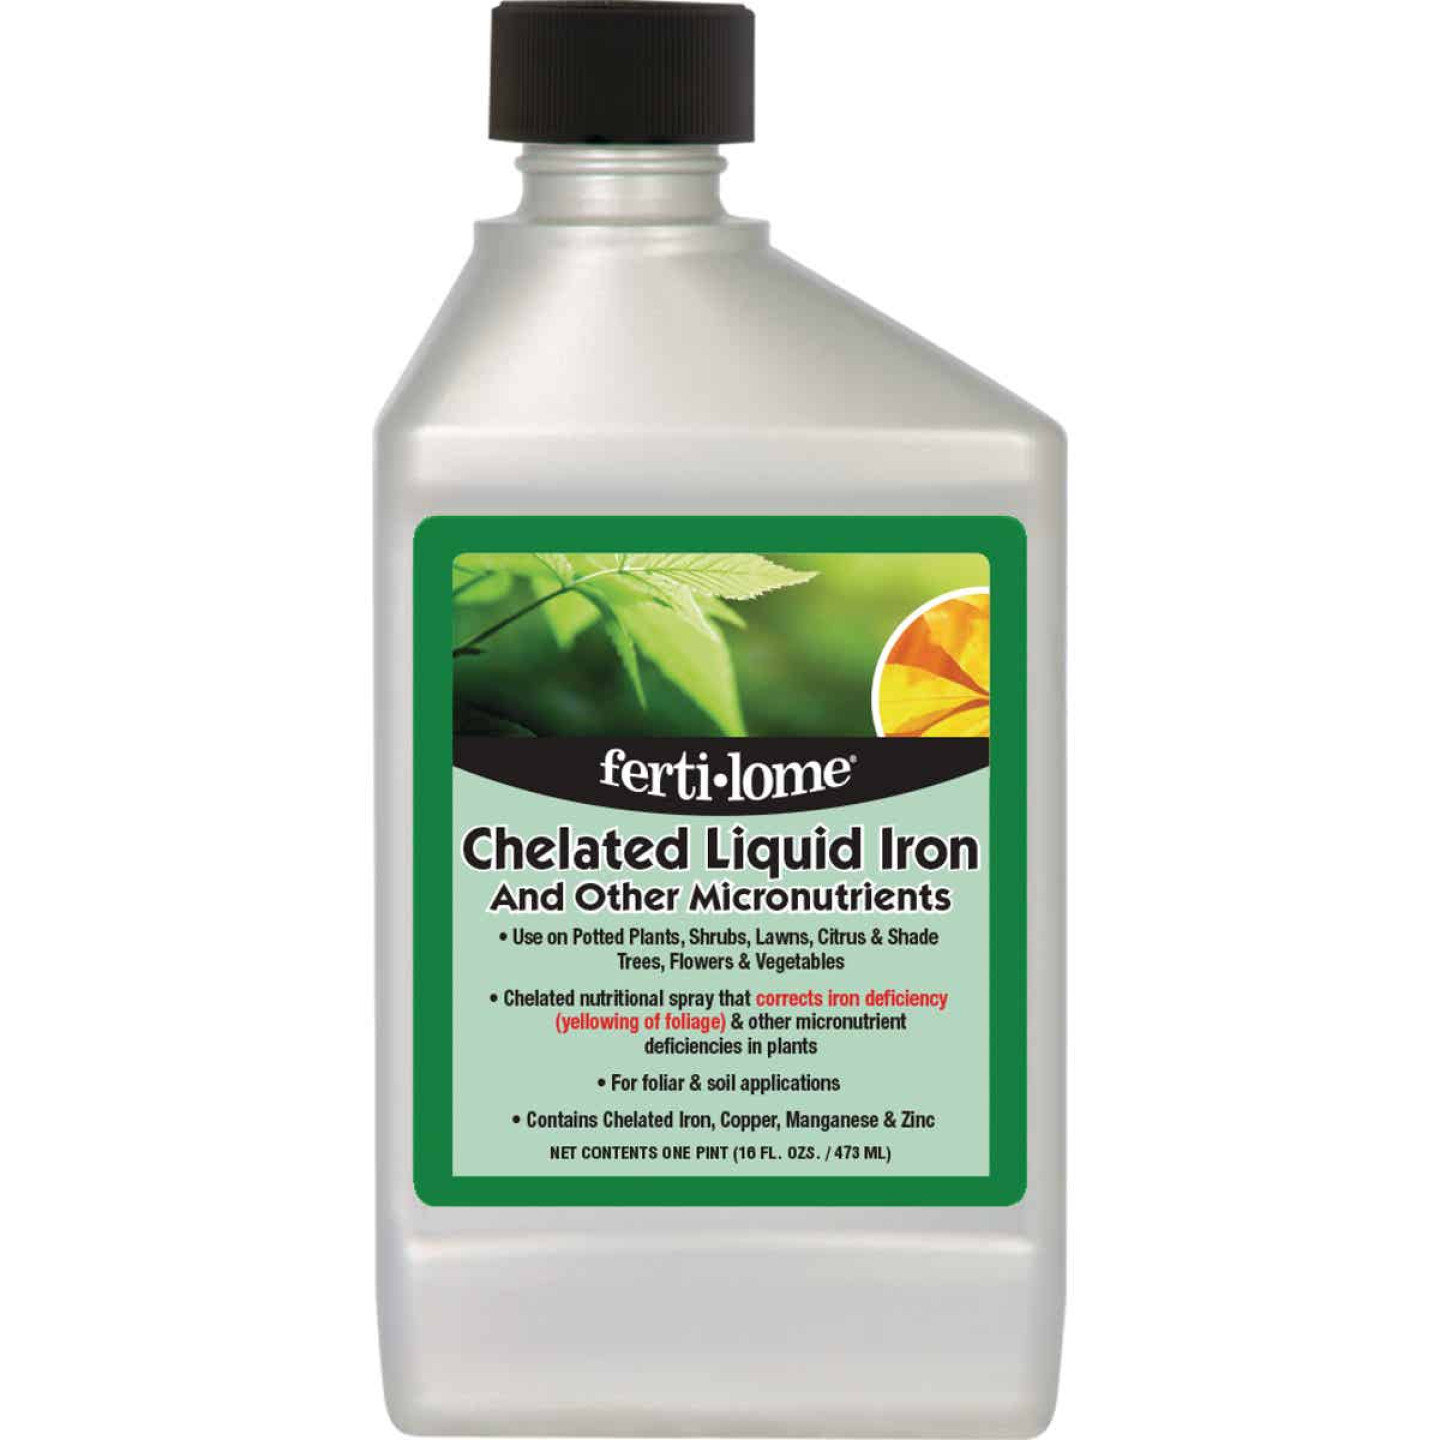 Ferti-lome 16 Oz. Chelated Iron Formulation Concentrate Liquid Plant Food Image 1